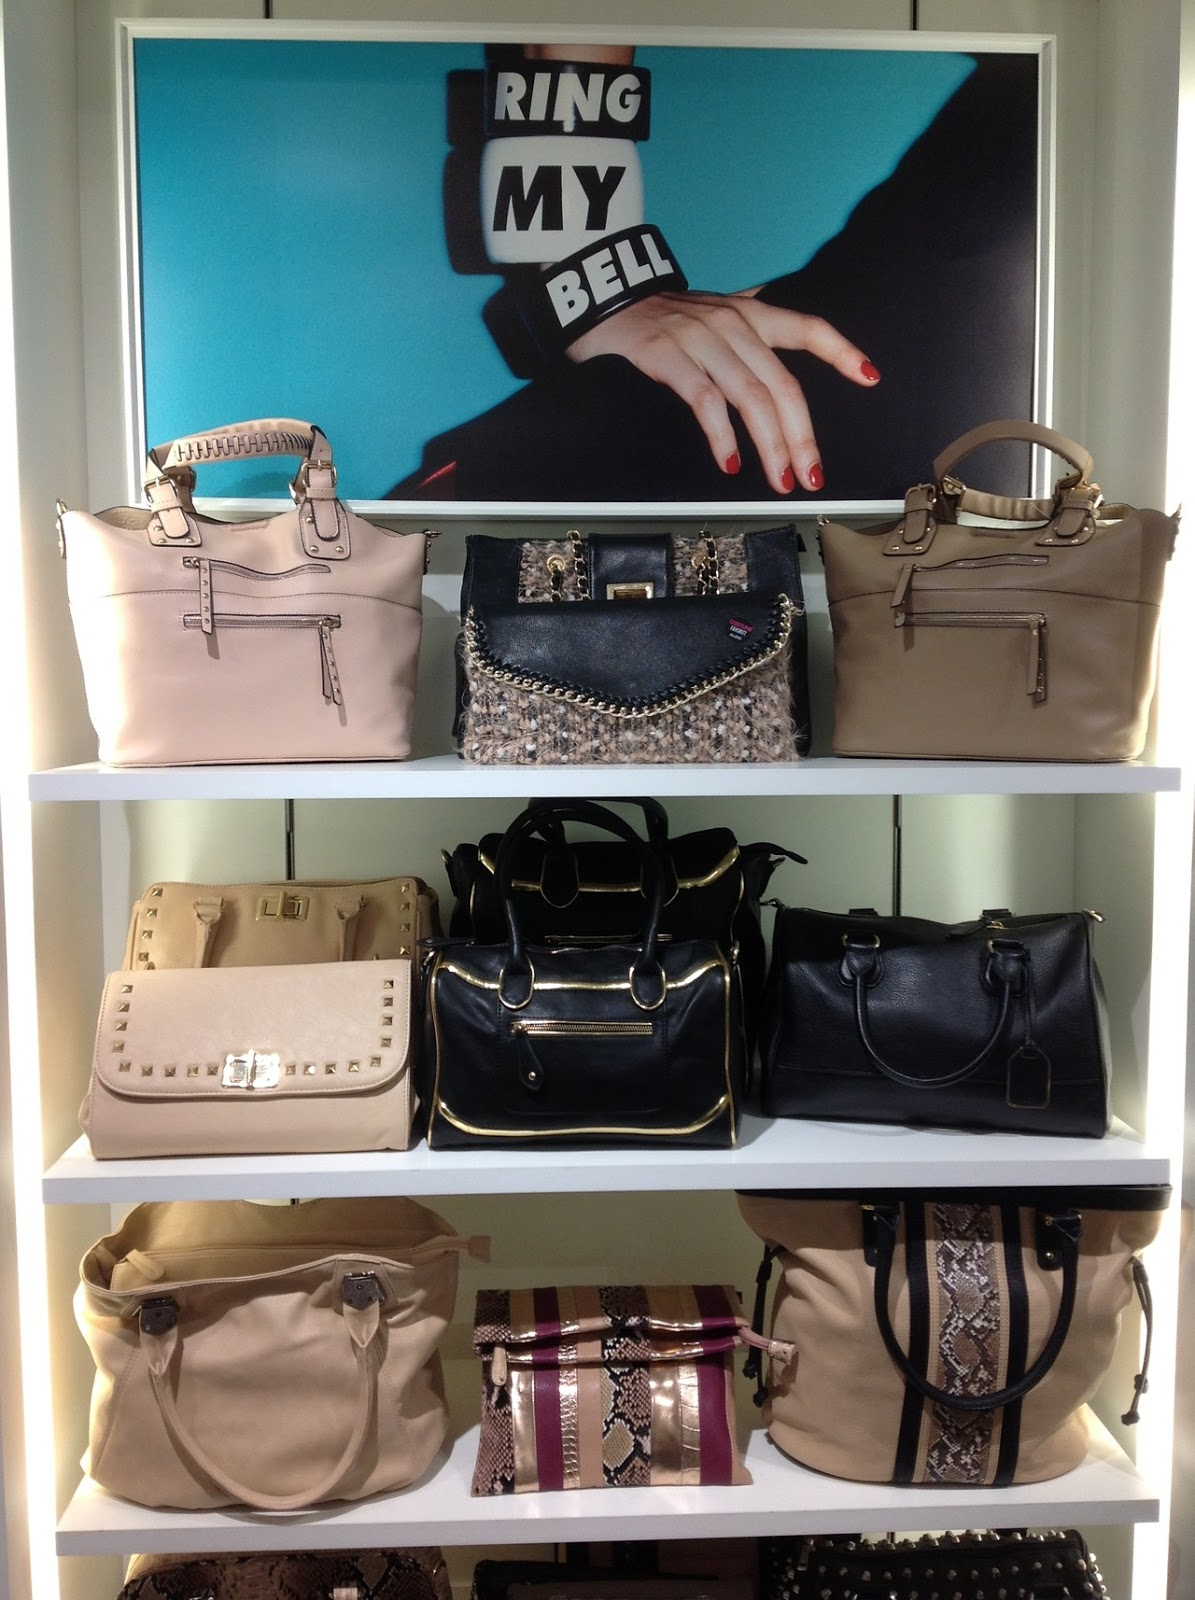 f808501fde The global shoe and accessory brand Aldo has assorted candy among their  shelves. Handbags, clutches, pumps, shoes, boots and jewels come in many  different ...